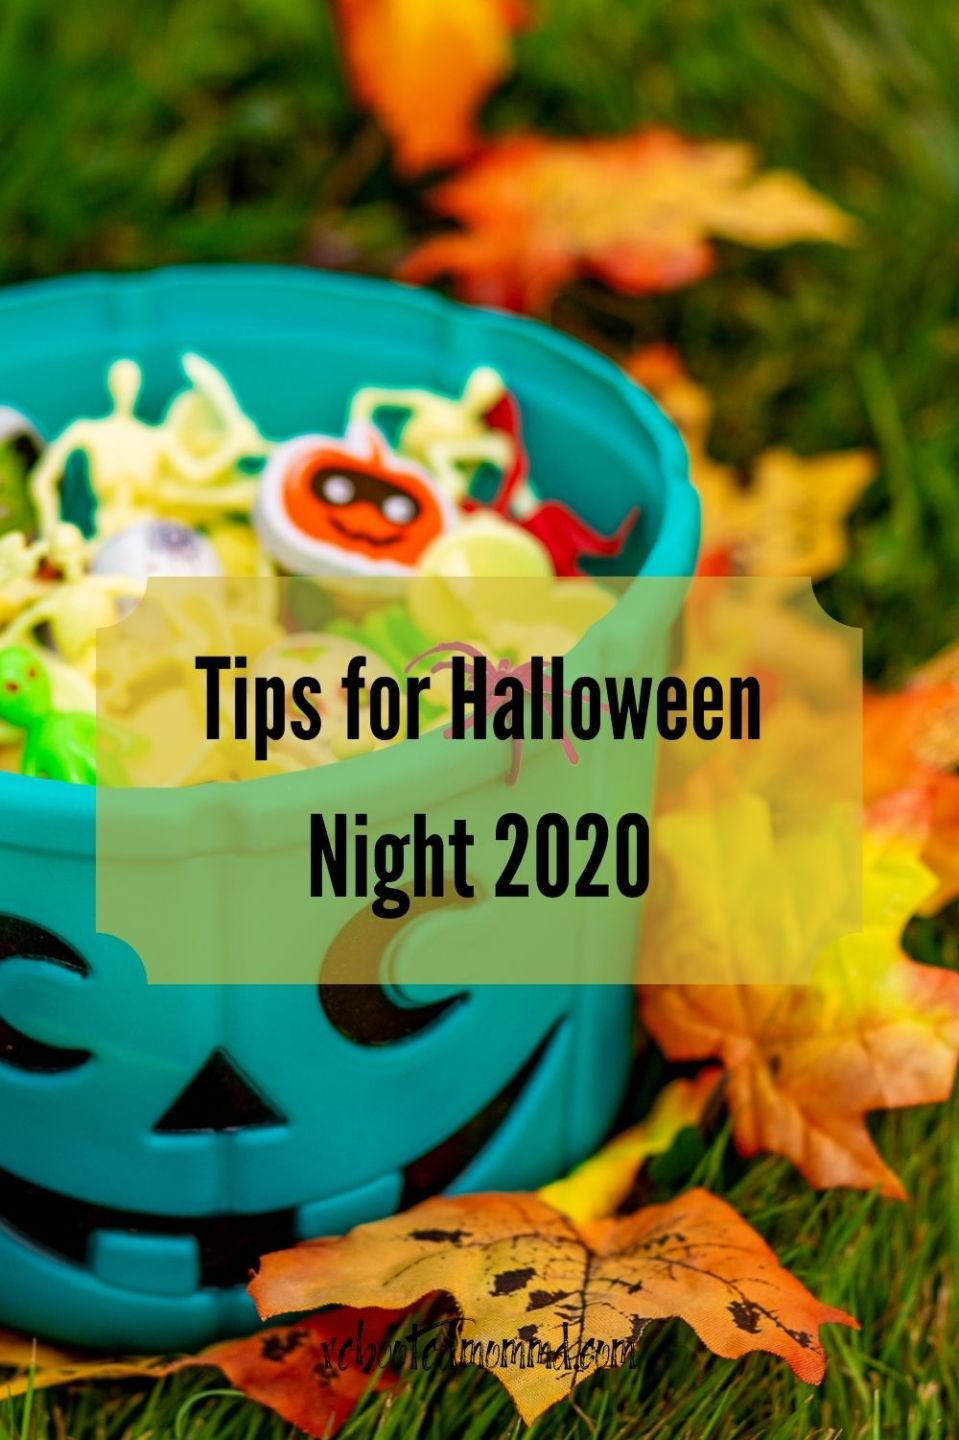 Tips for Halloween Night 2020